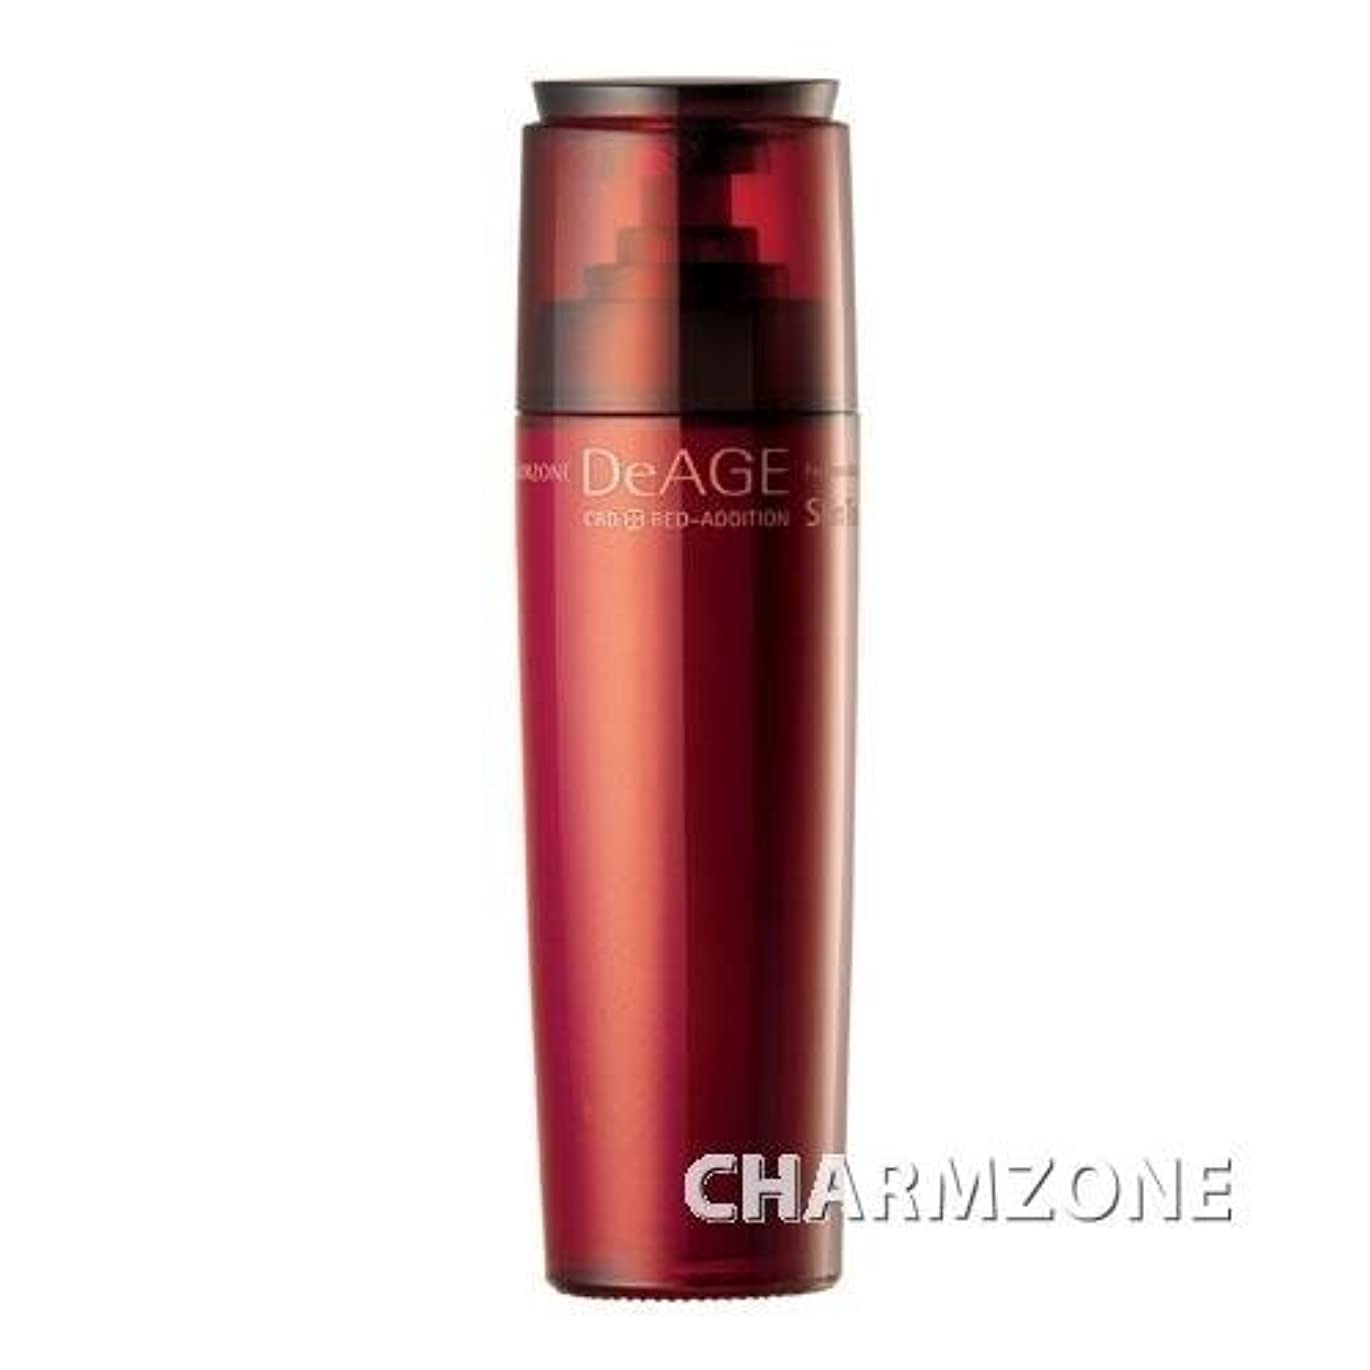 一時停止知り合いかすれたCHARMZONE DeAGE RED-ADDITION Skin Toner [Korean Import]